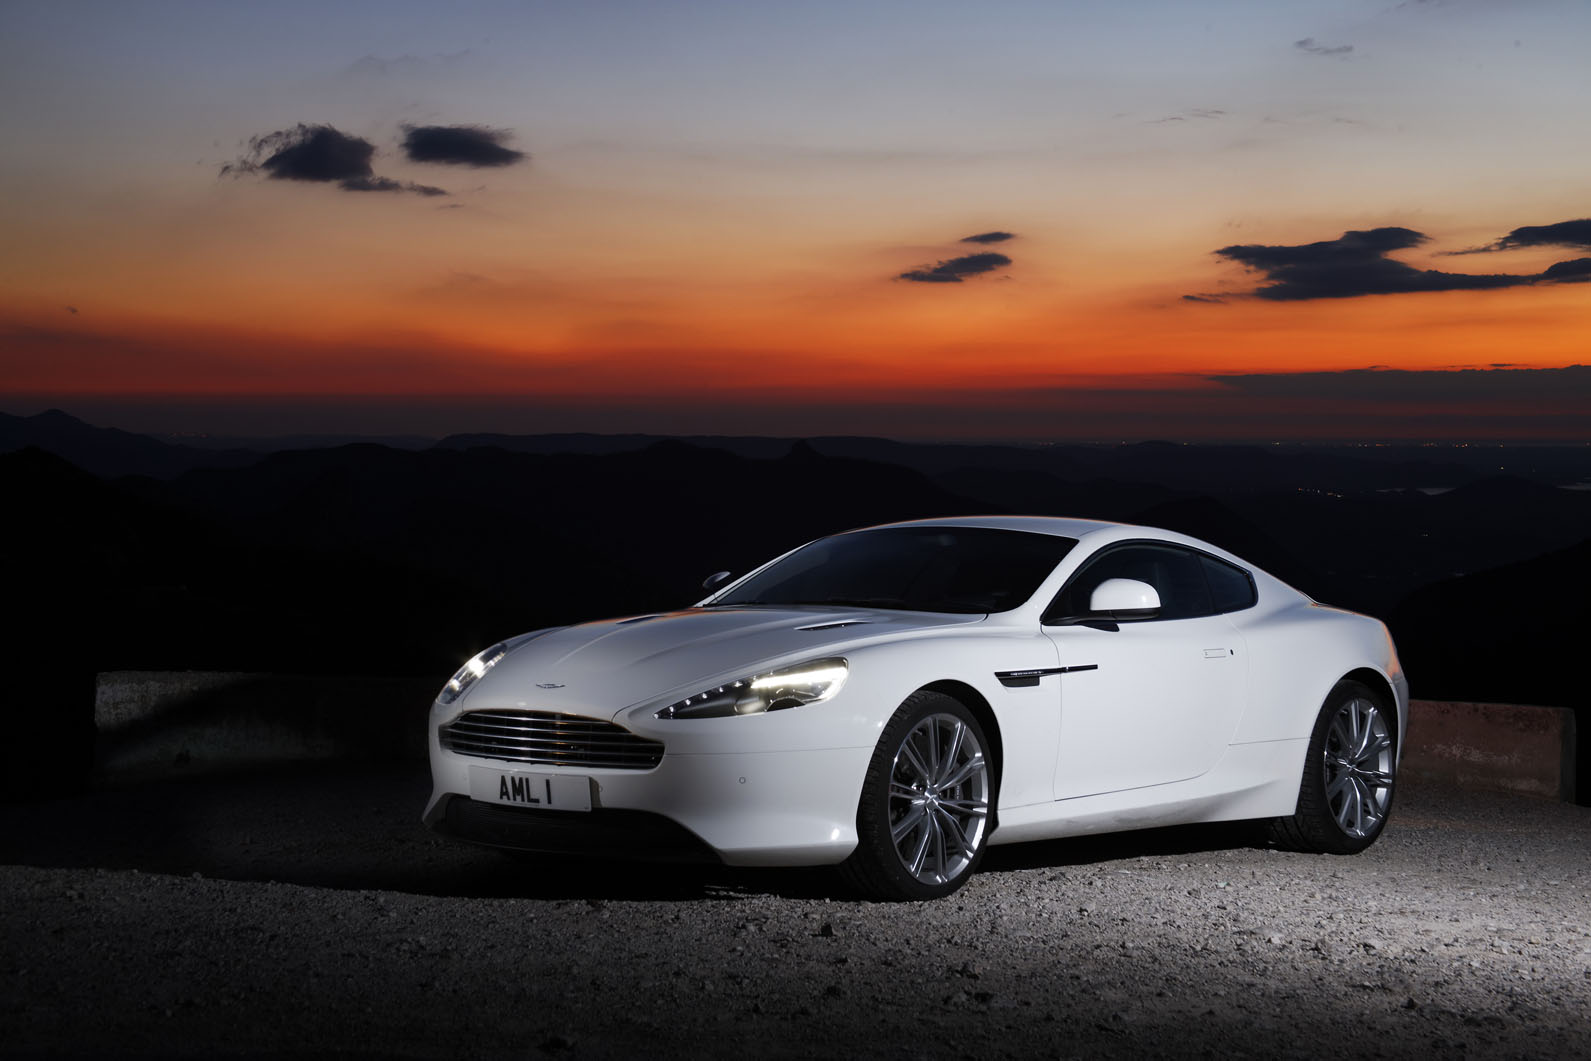 2017 Aston Martin Virage photo - 4